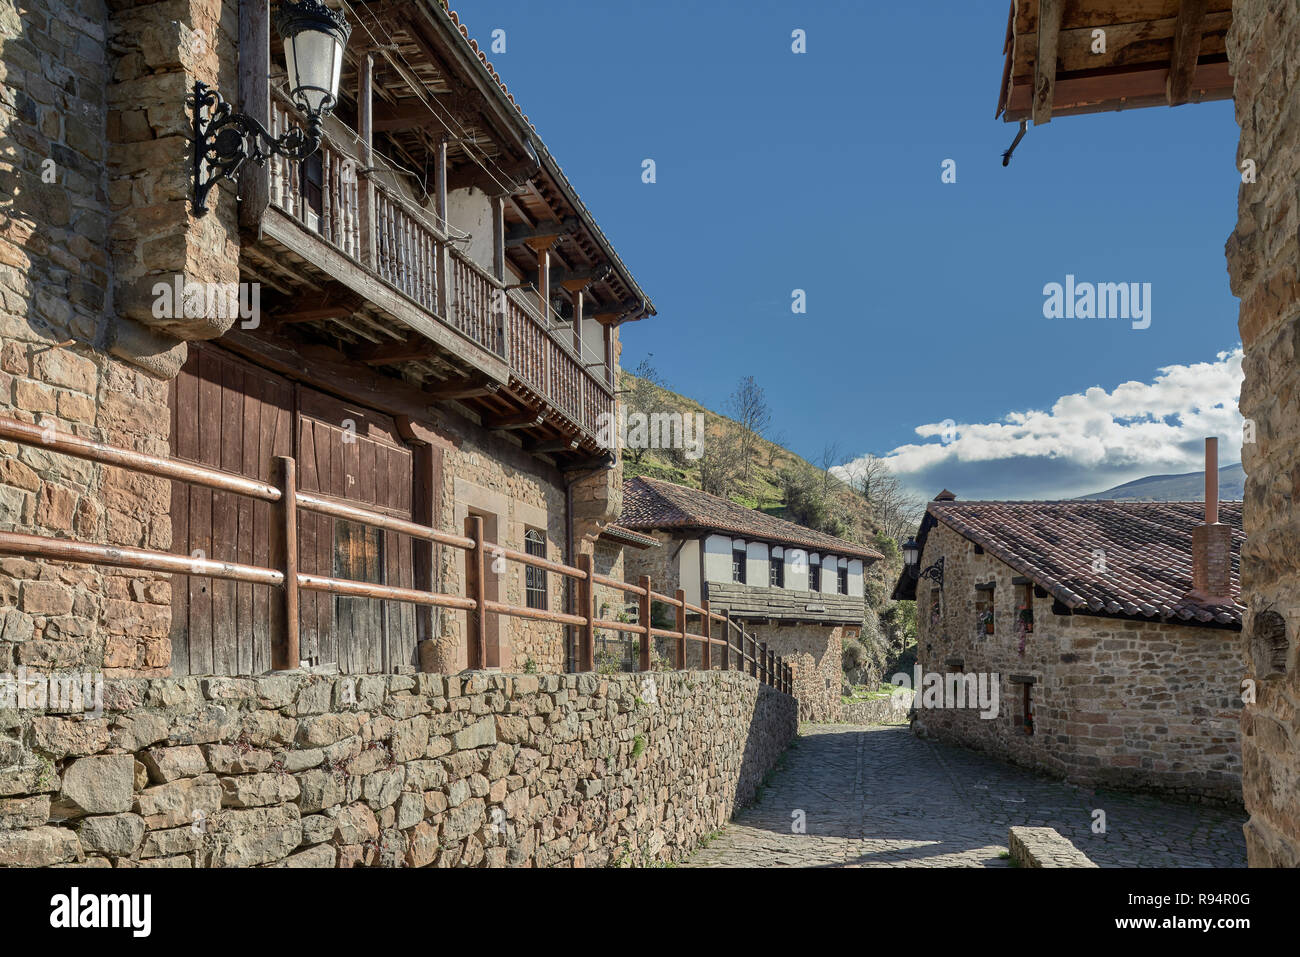 Bárcena Mayor, declared the prettiest town in Spain, Cantabria, Europe - Stock Image